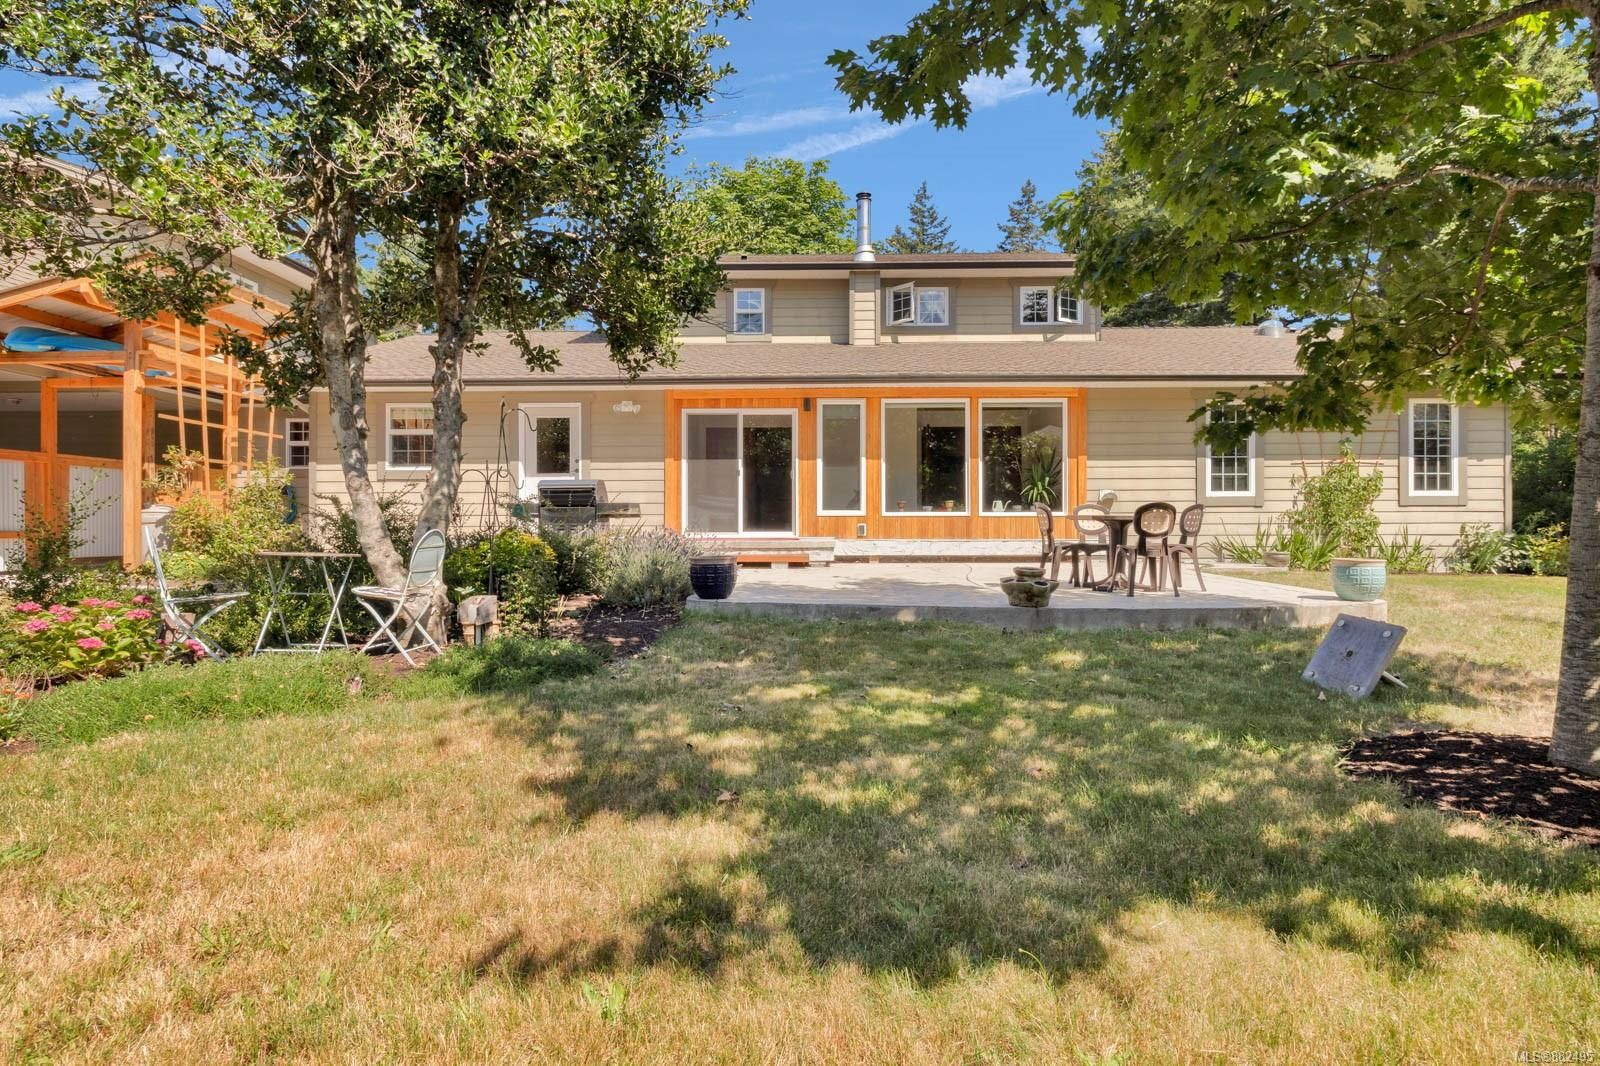 Photo 31: Photos: 375 Butchers Rd in : CV Comox (Town of) House for sale (Comox Valley)  : MLS®# 882495